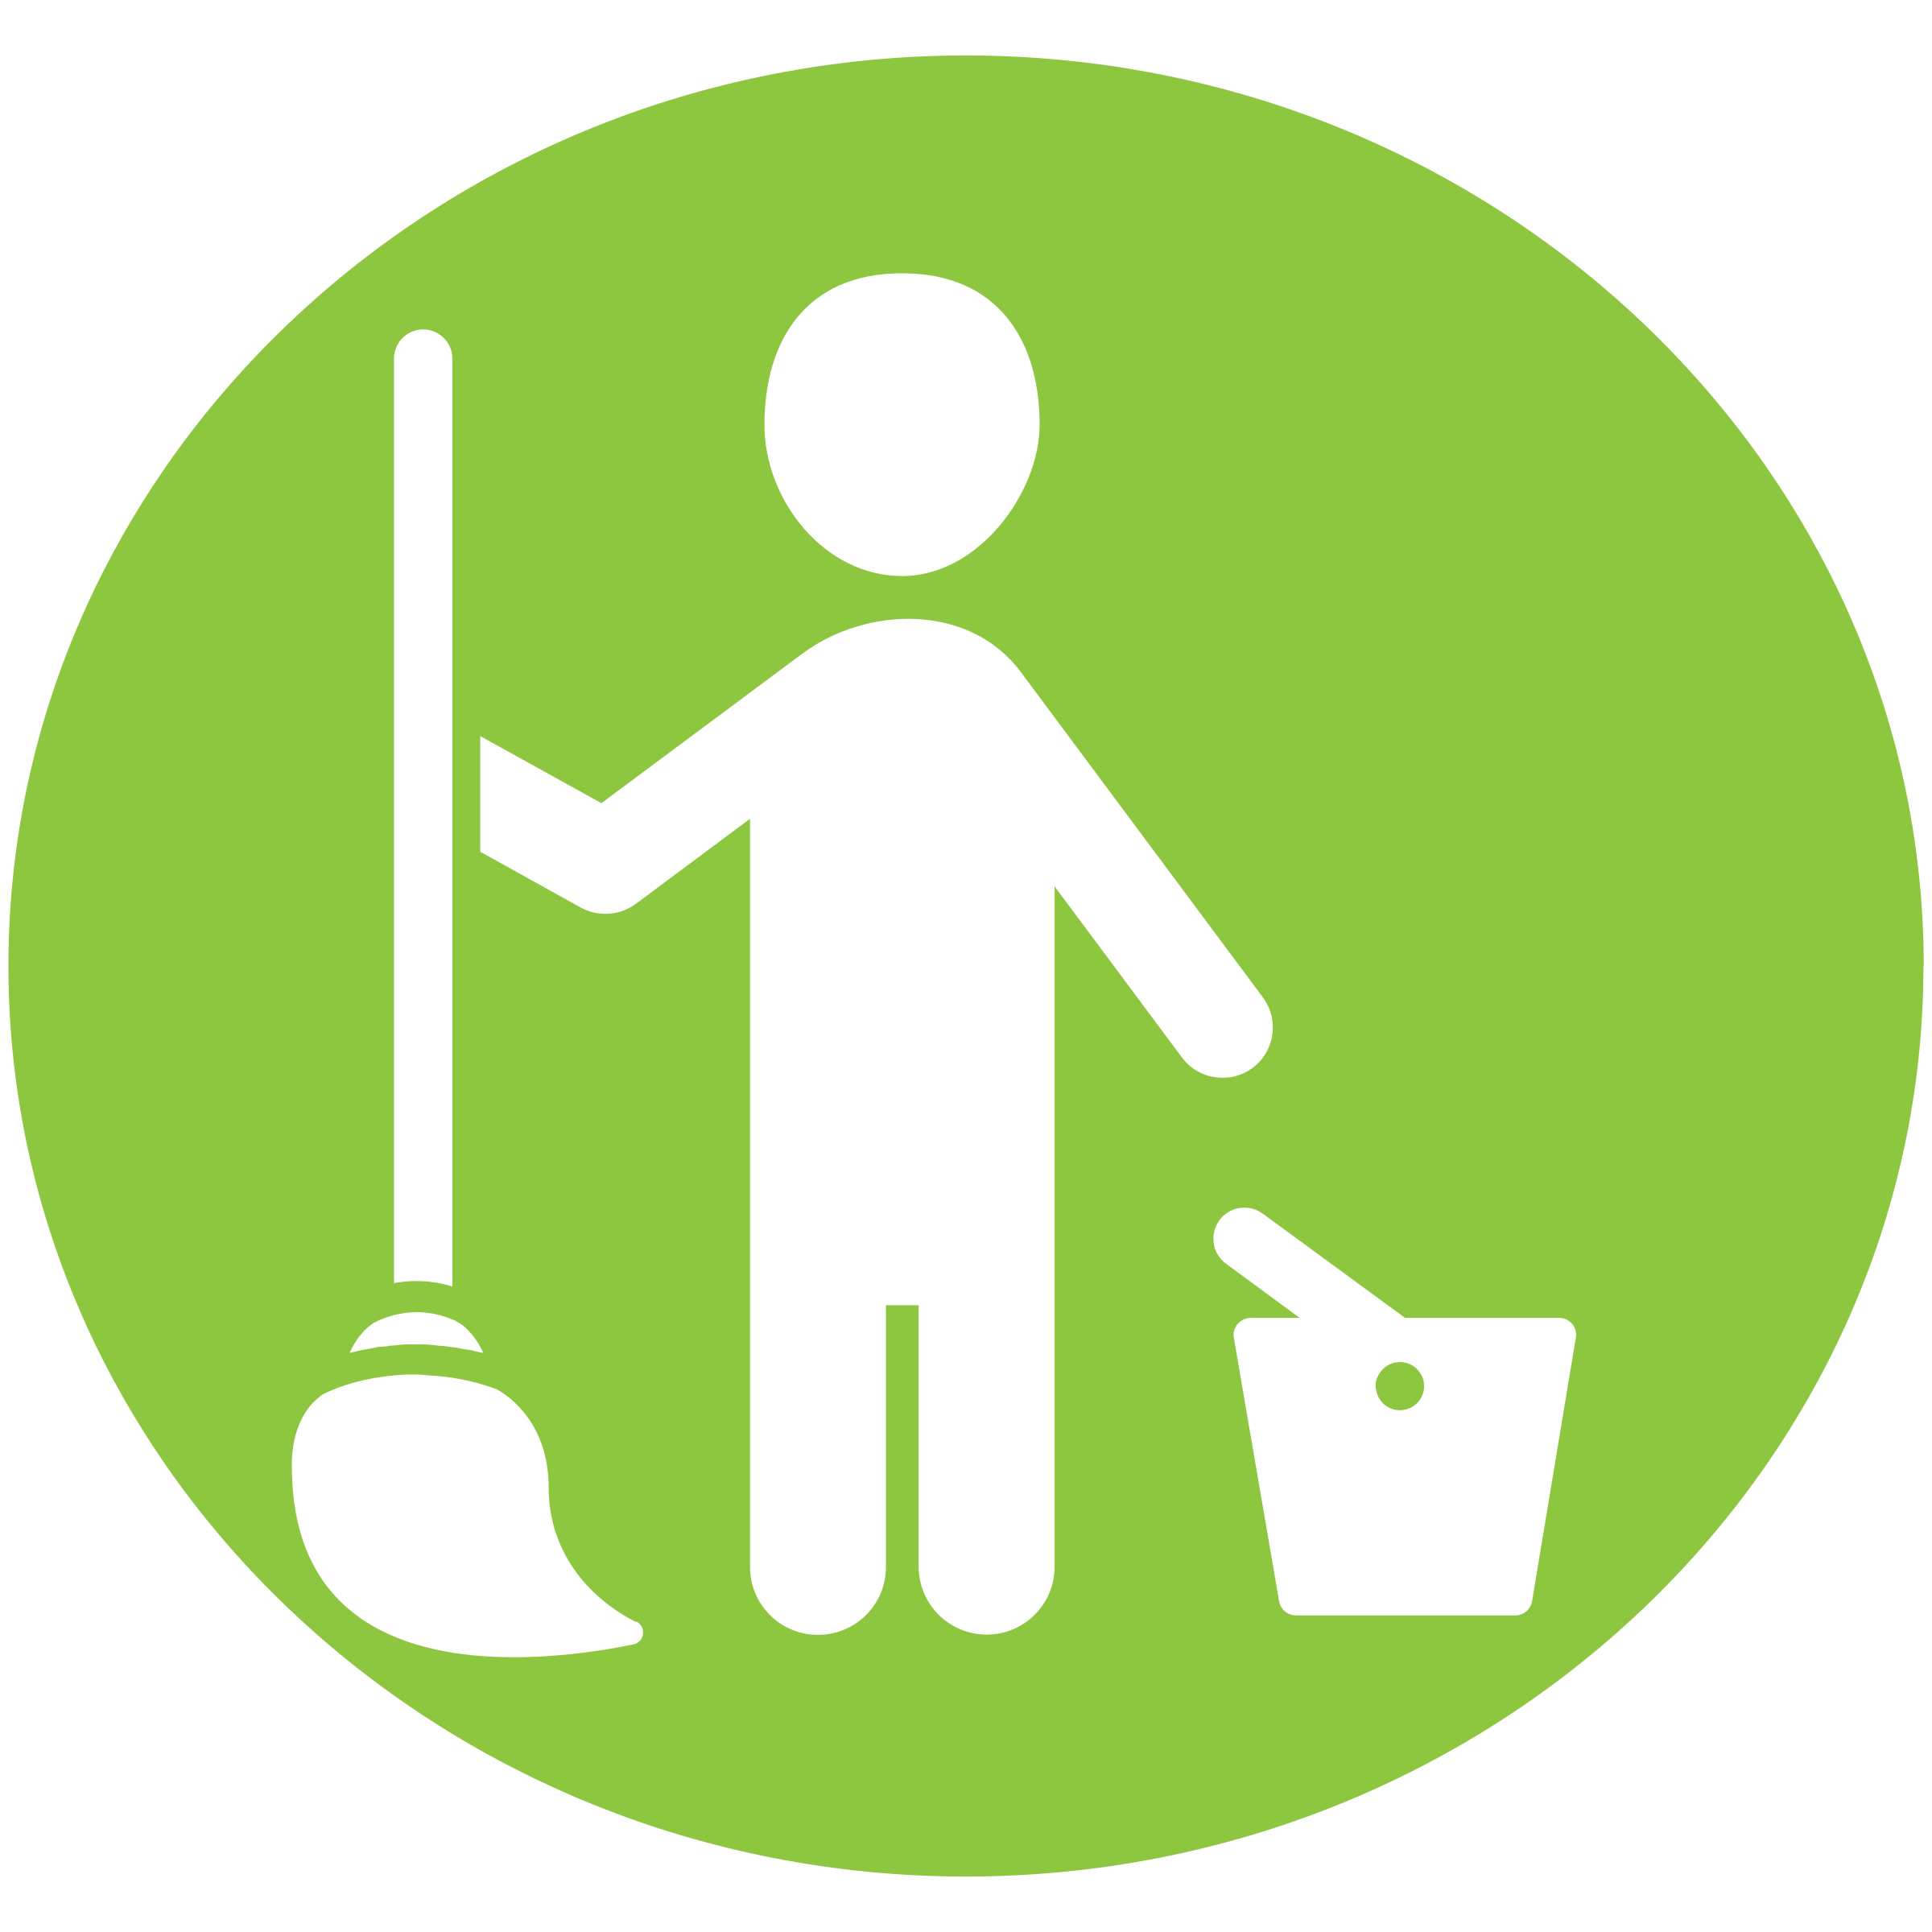 Cleaning clipart clean man. Picto big image png